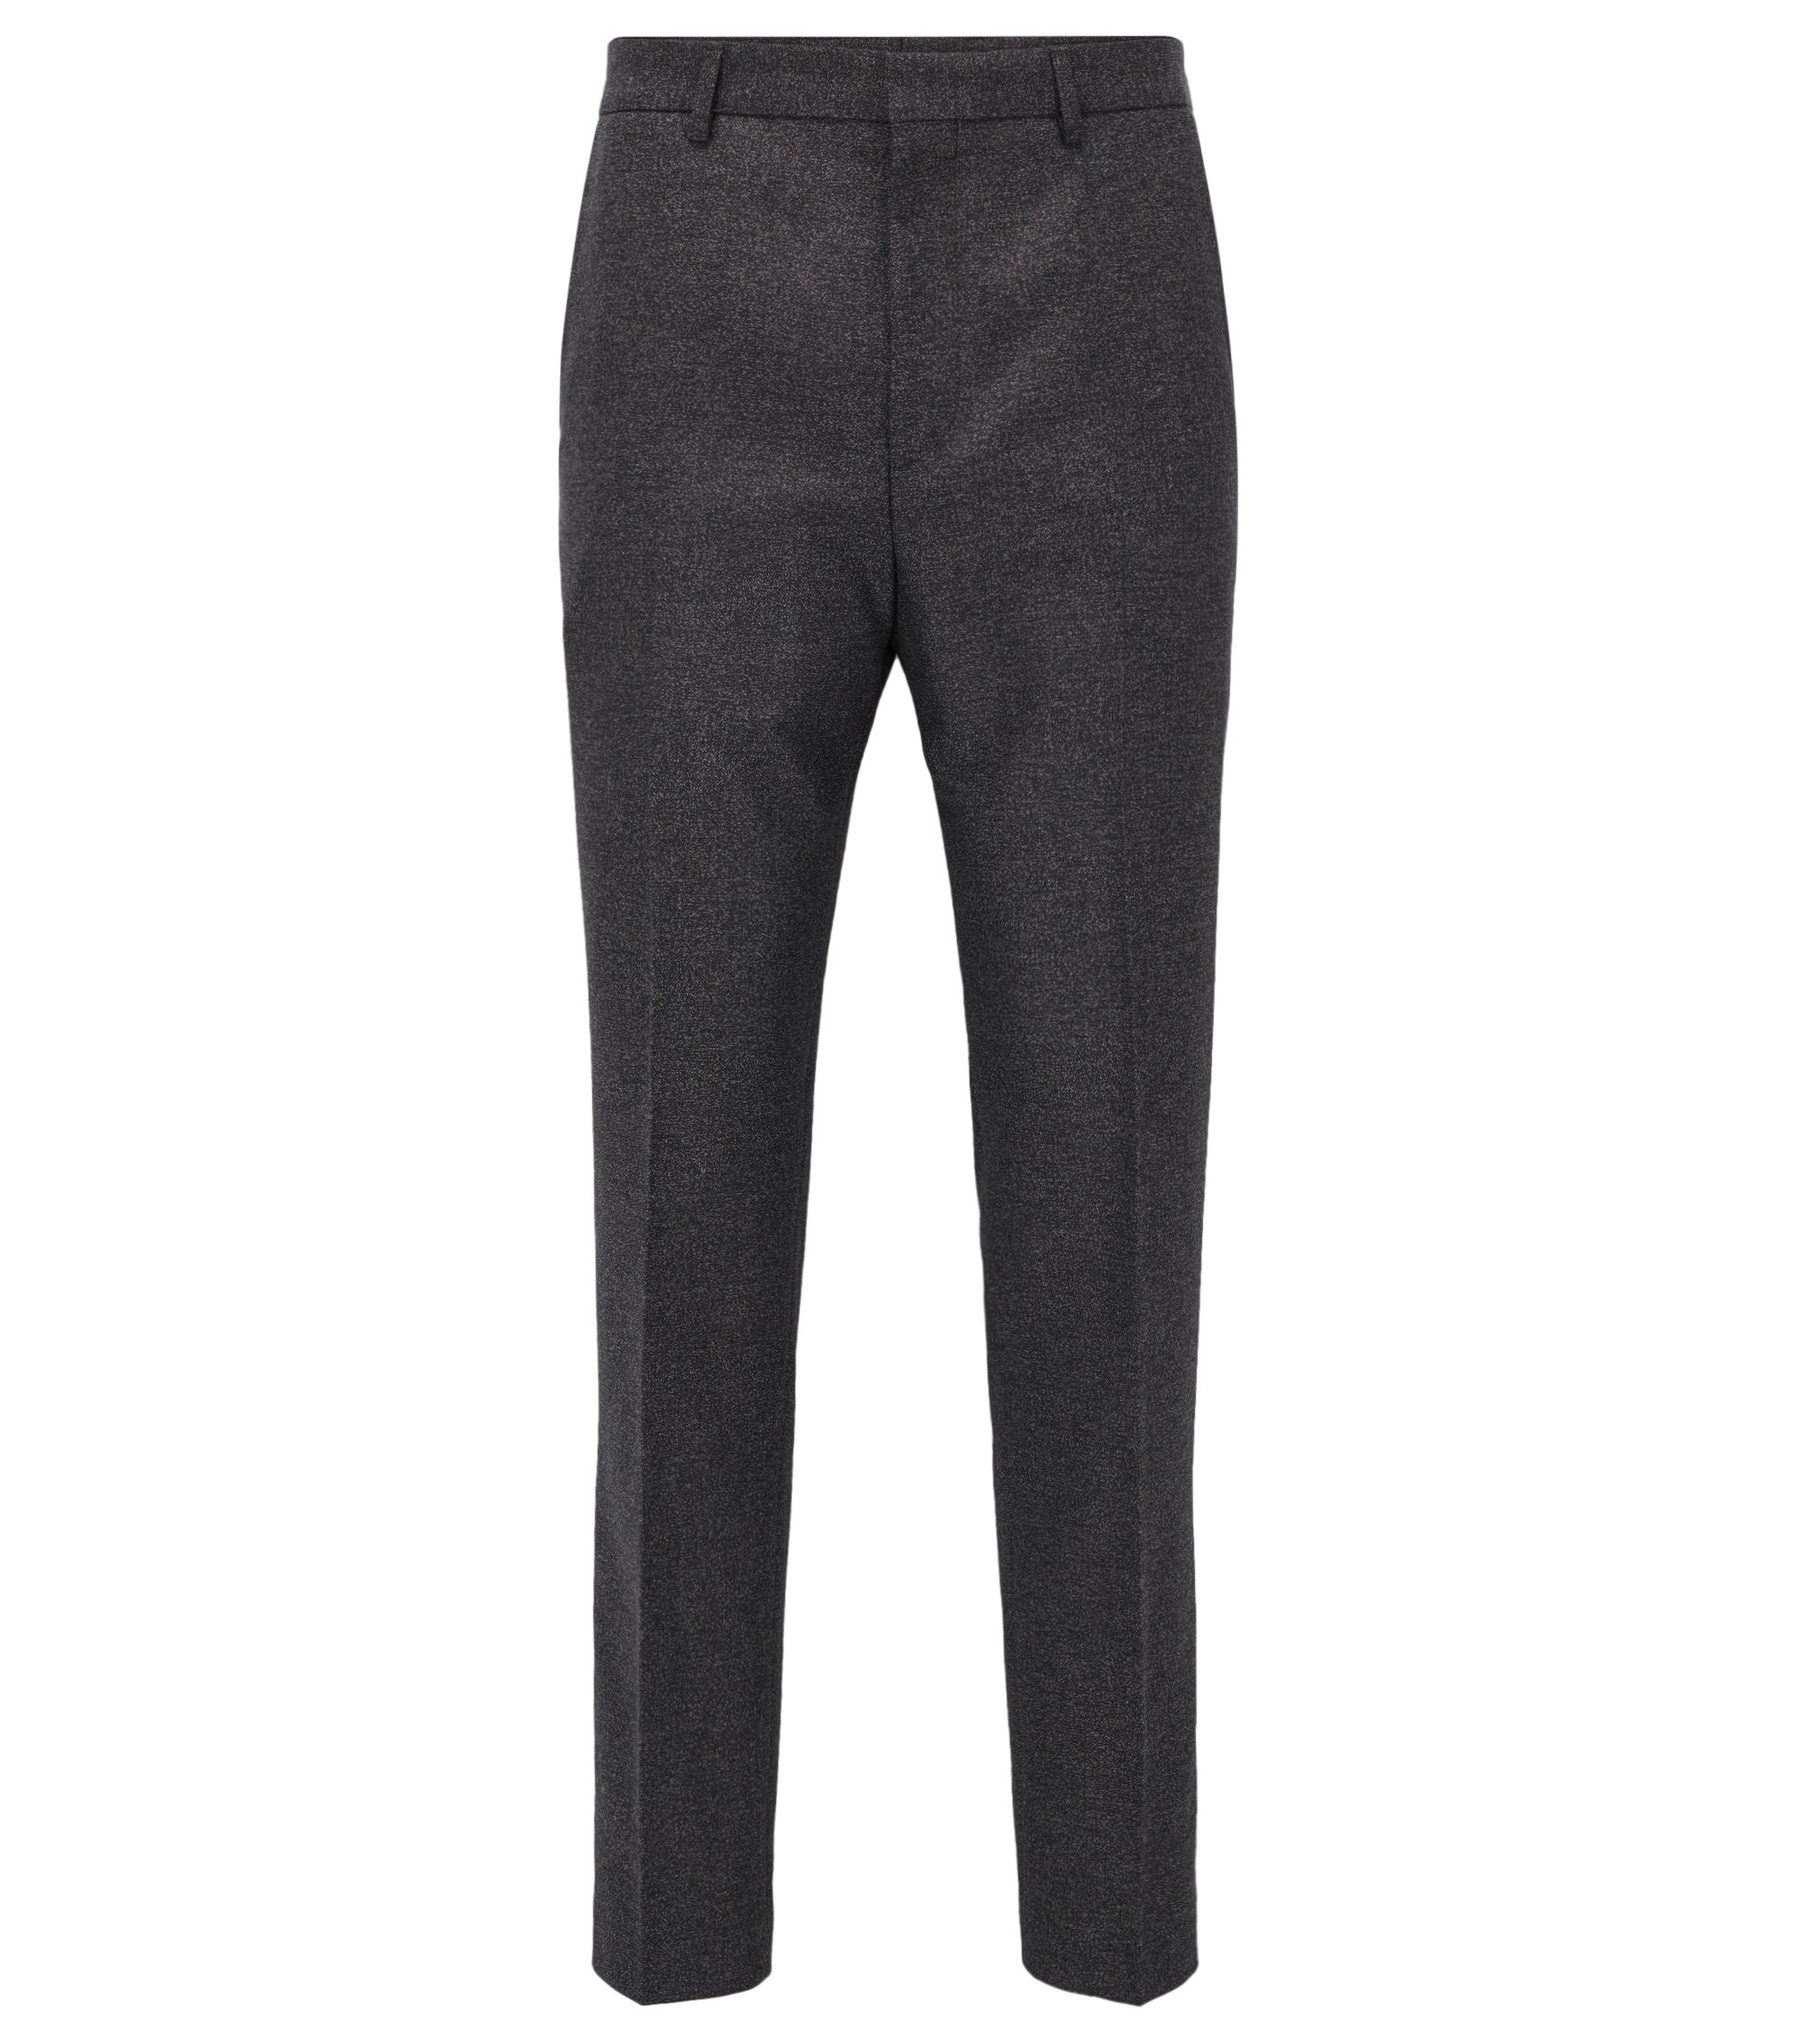 Pantalon Slim Fit en coton mélangé chiné, Anthracite